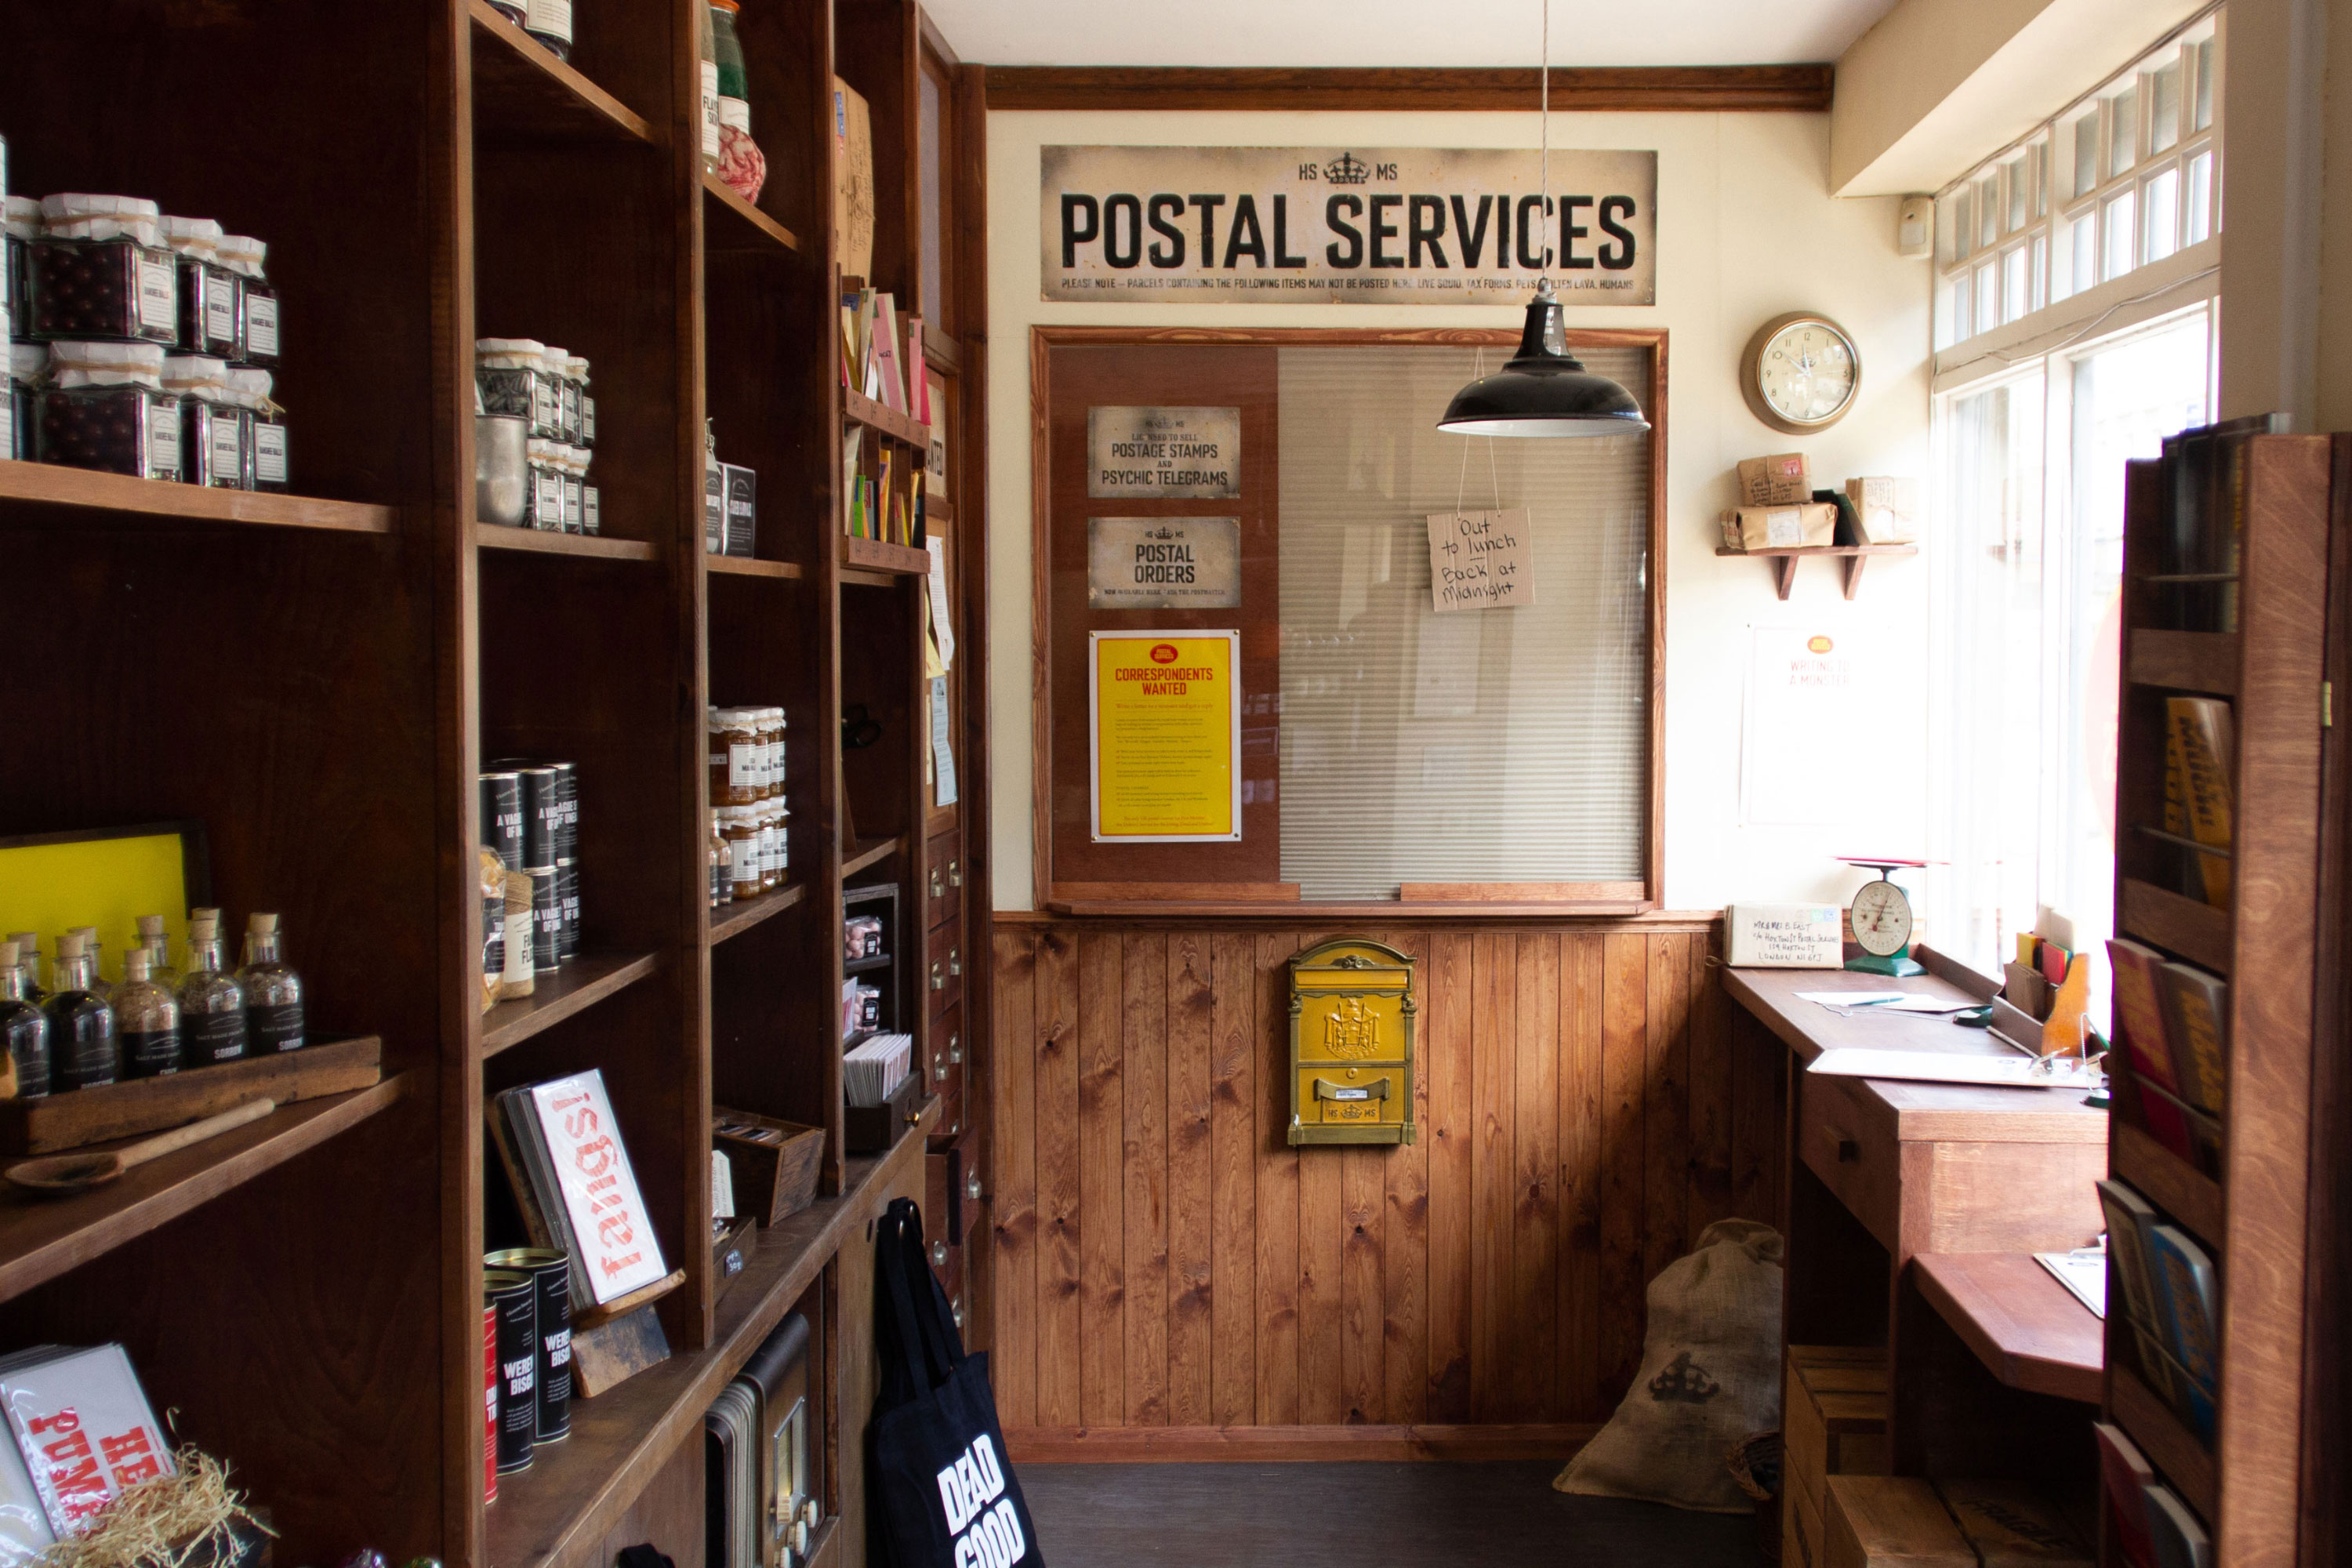 HSMS_postal_services_interior